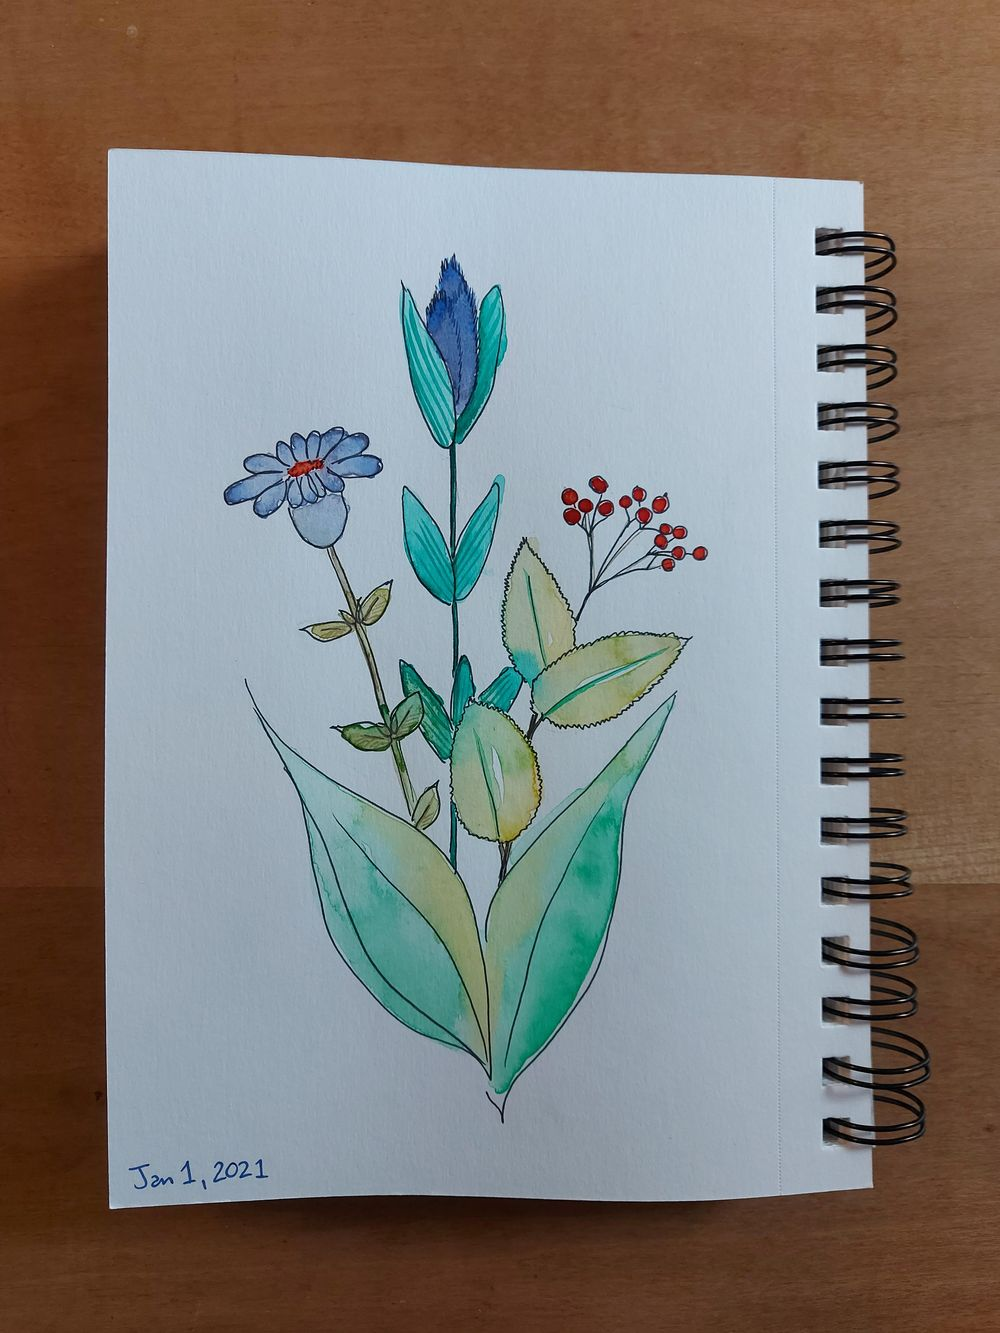 Watercolour florals - image 2 - student project